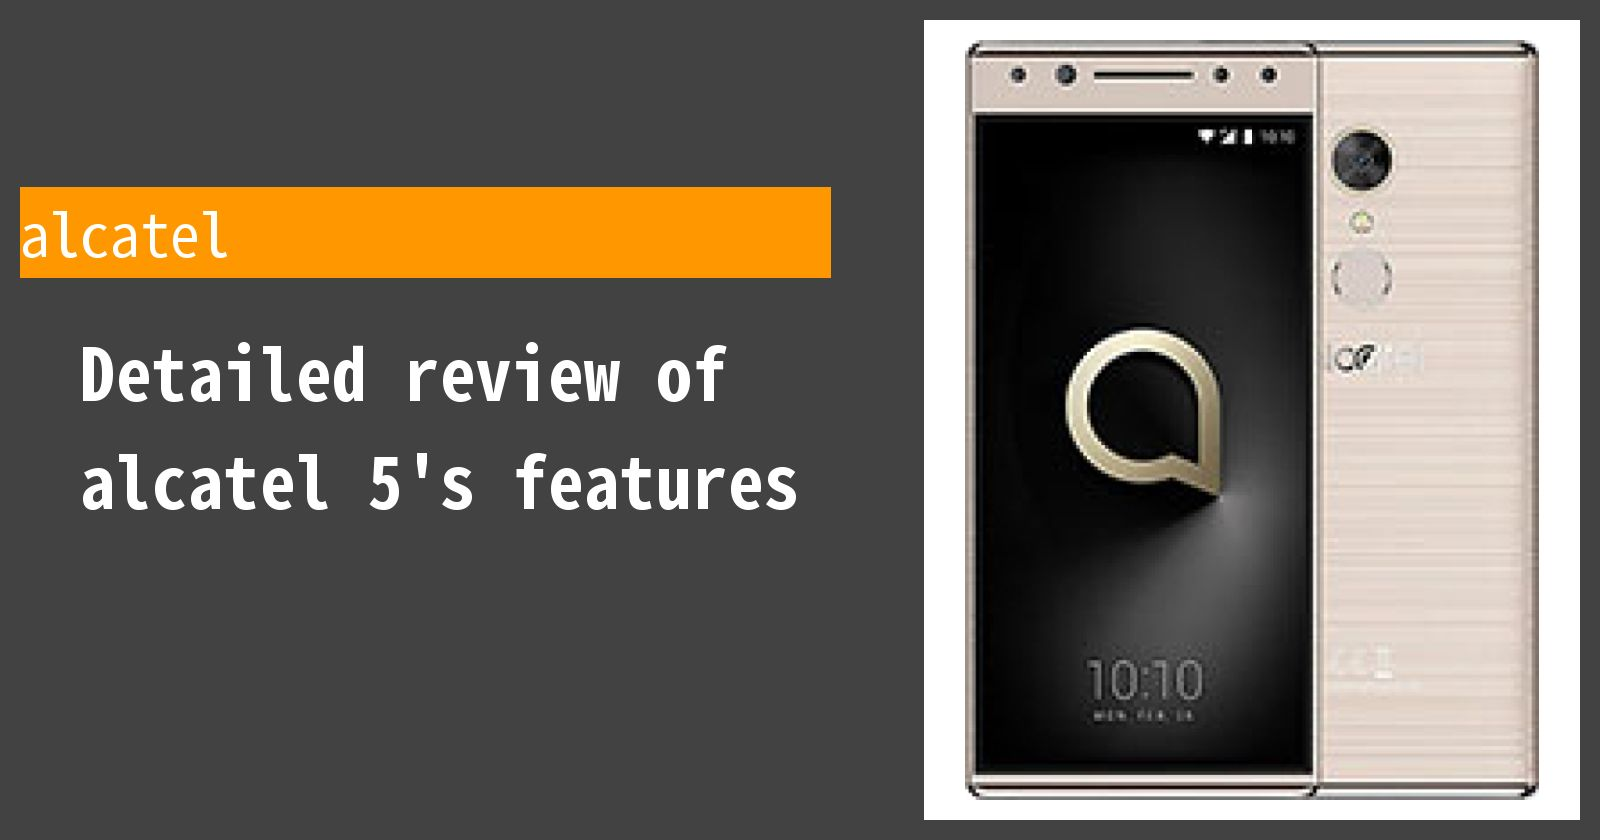 Detailed review of alcatel 5's features